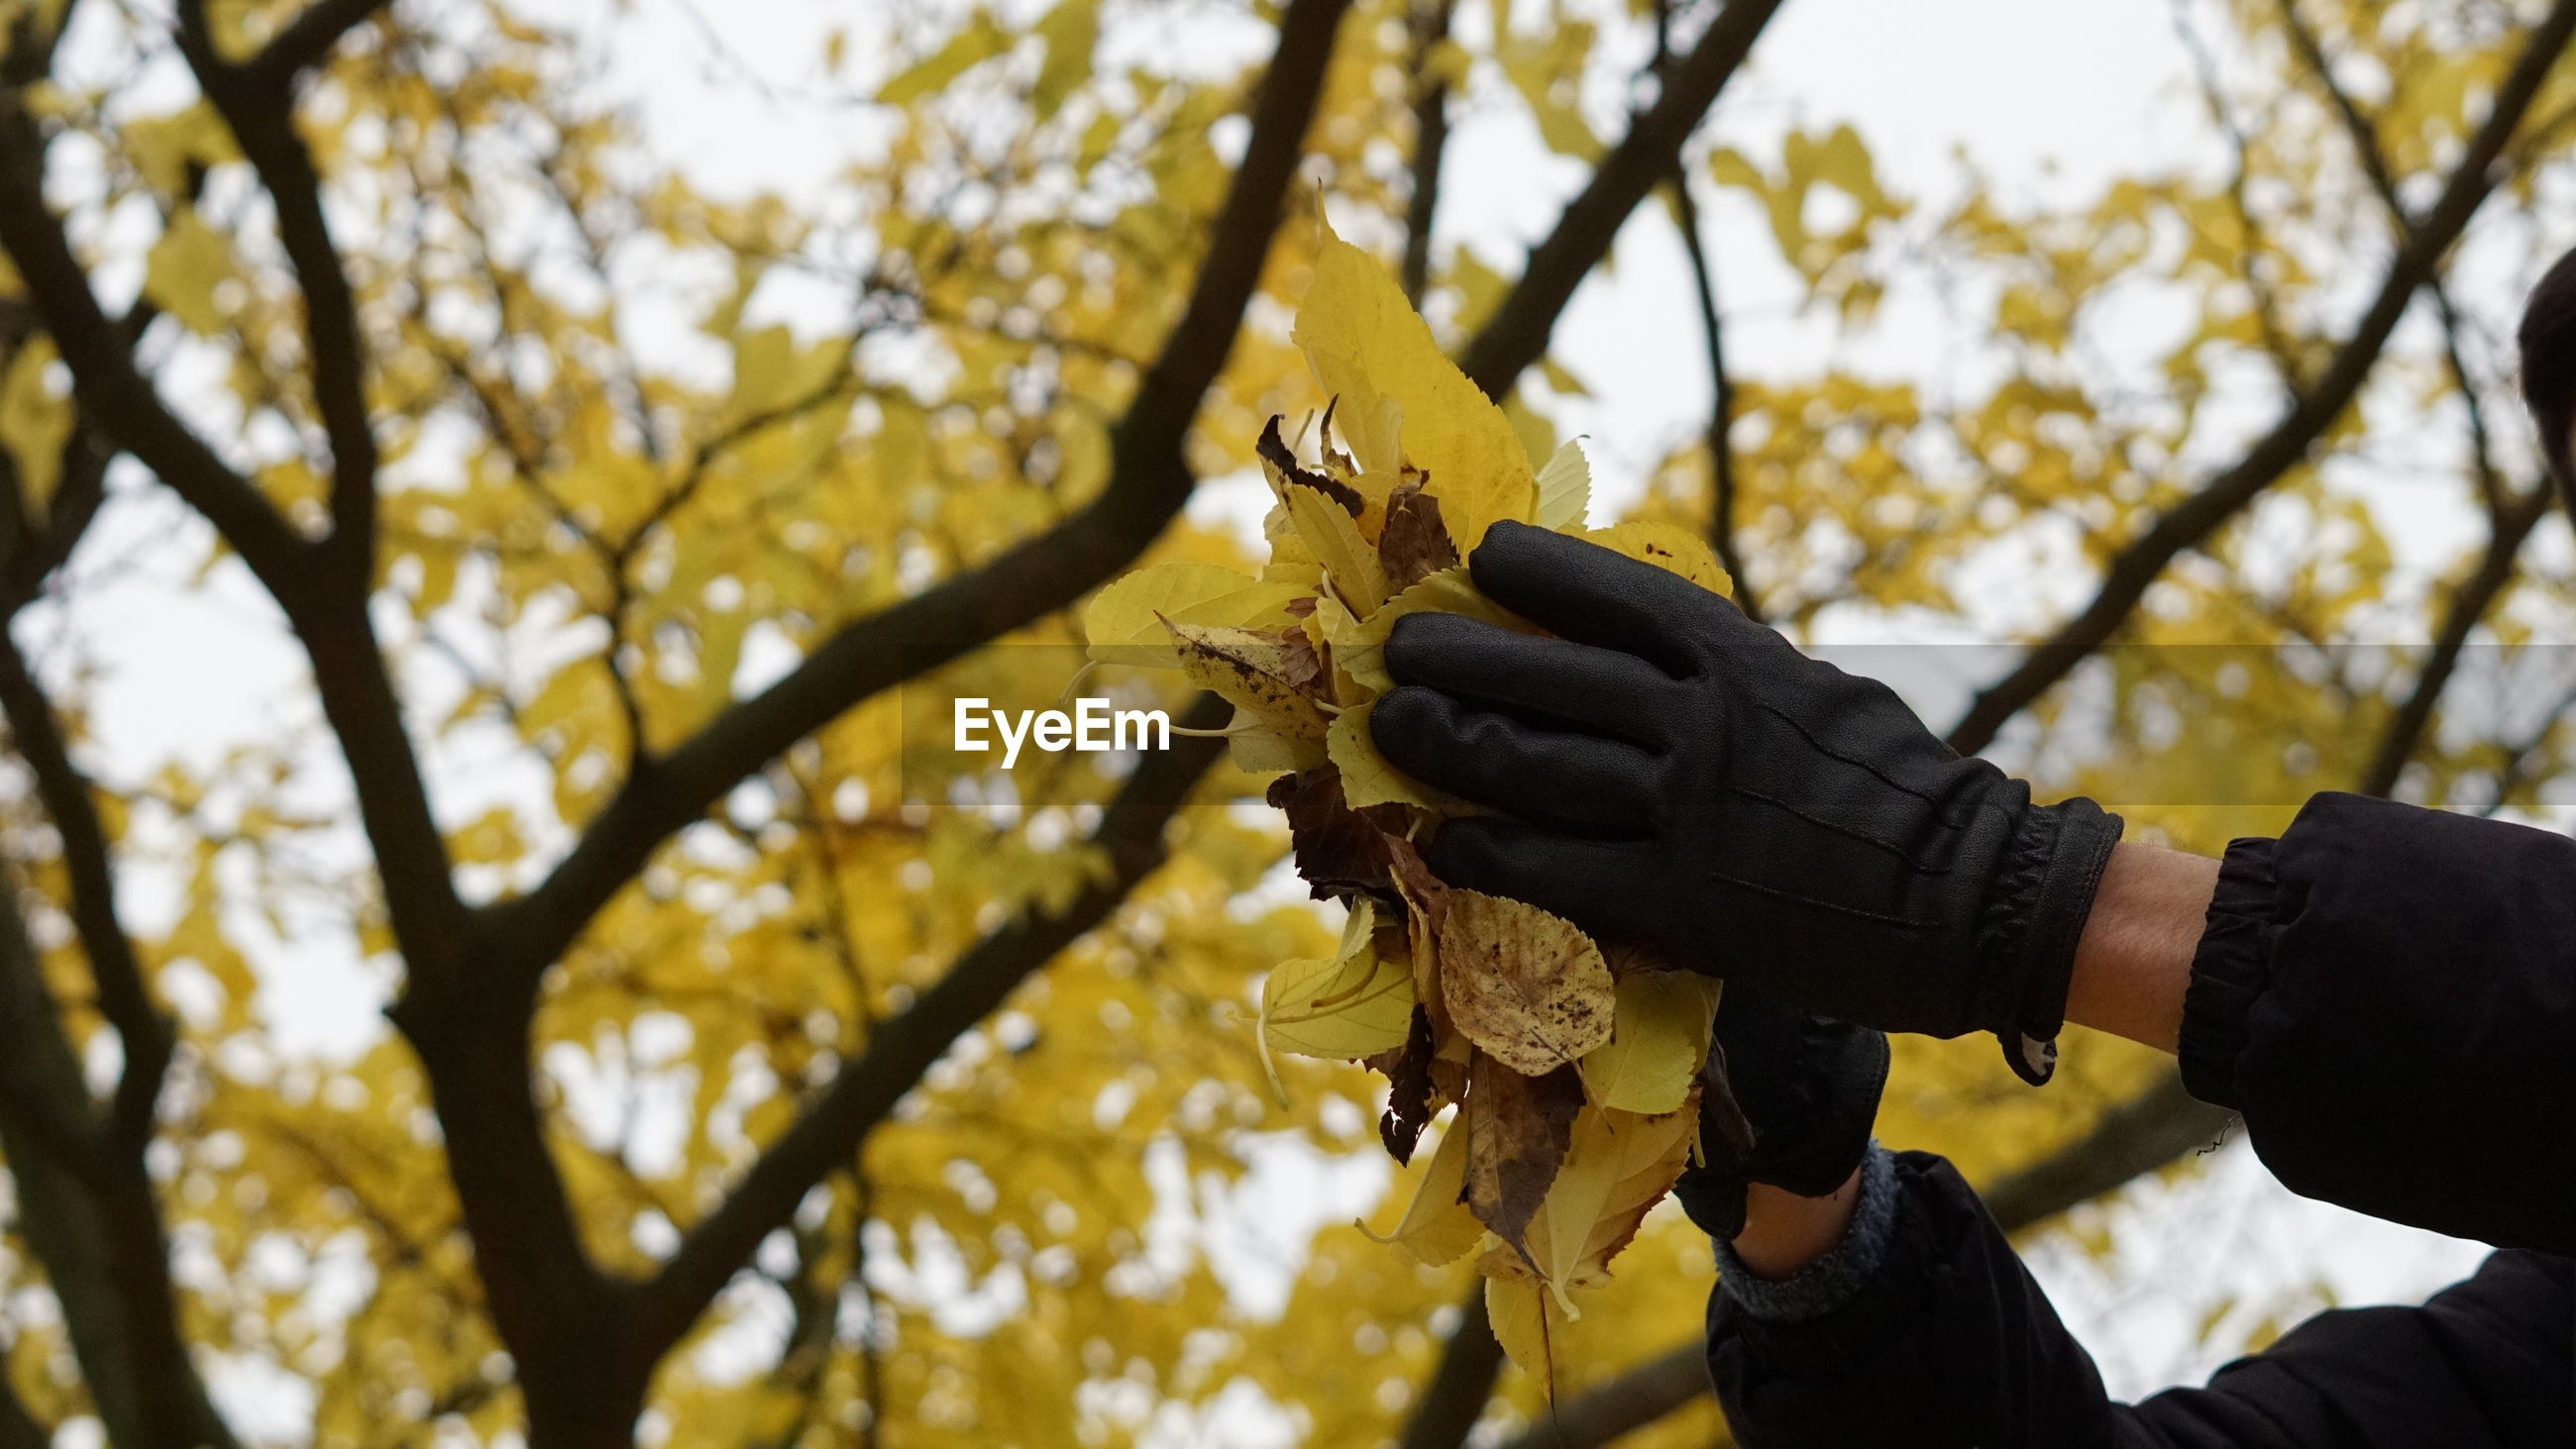 Low angle view of hand holding leaves during autumn